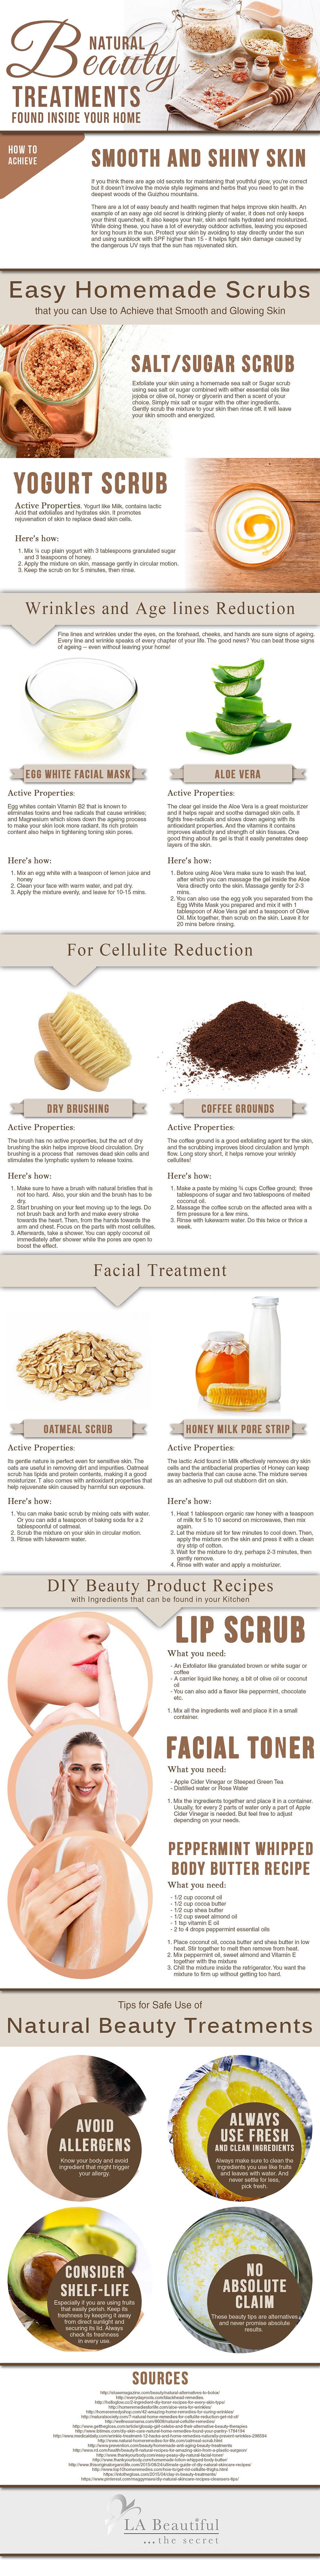 Natural Beauty Treatments Found inside Your Home